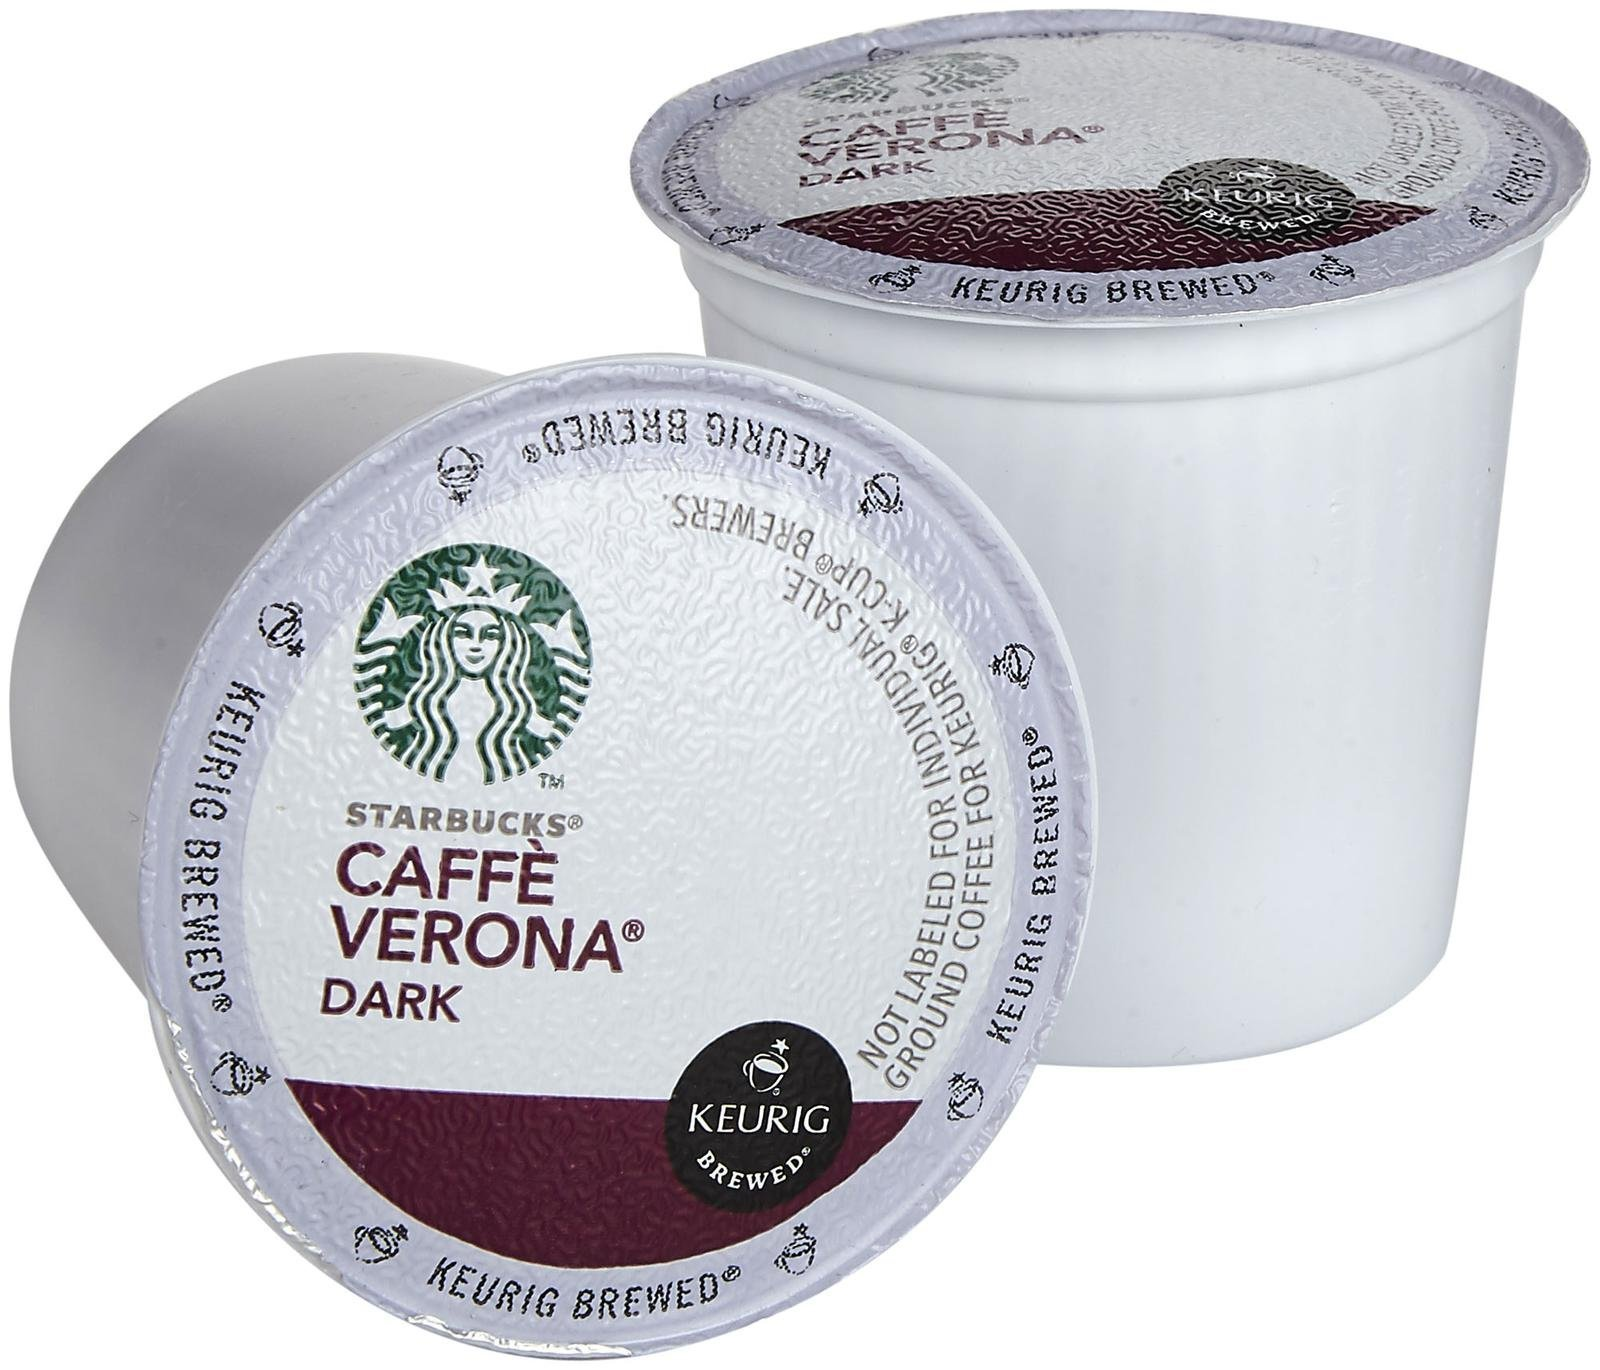 Starbucks Cafe Verona Coffee Keurig K-Cups, 16 Count by Starbucks